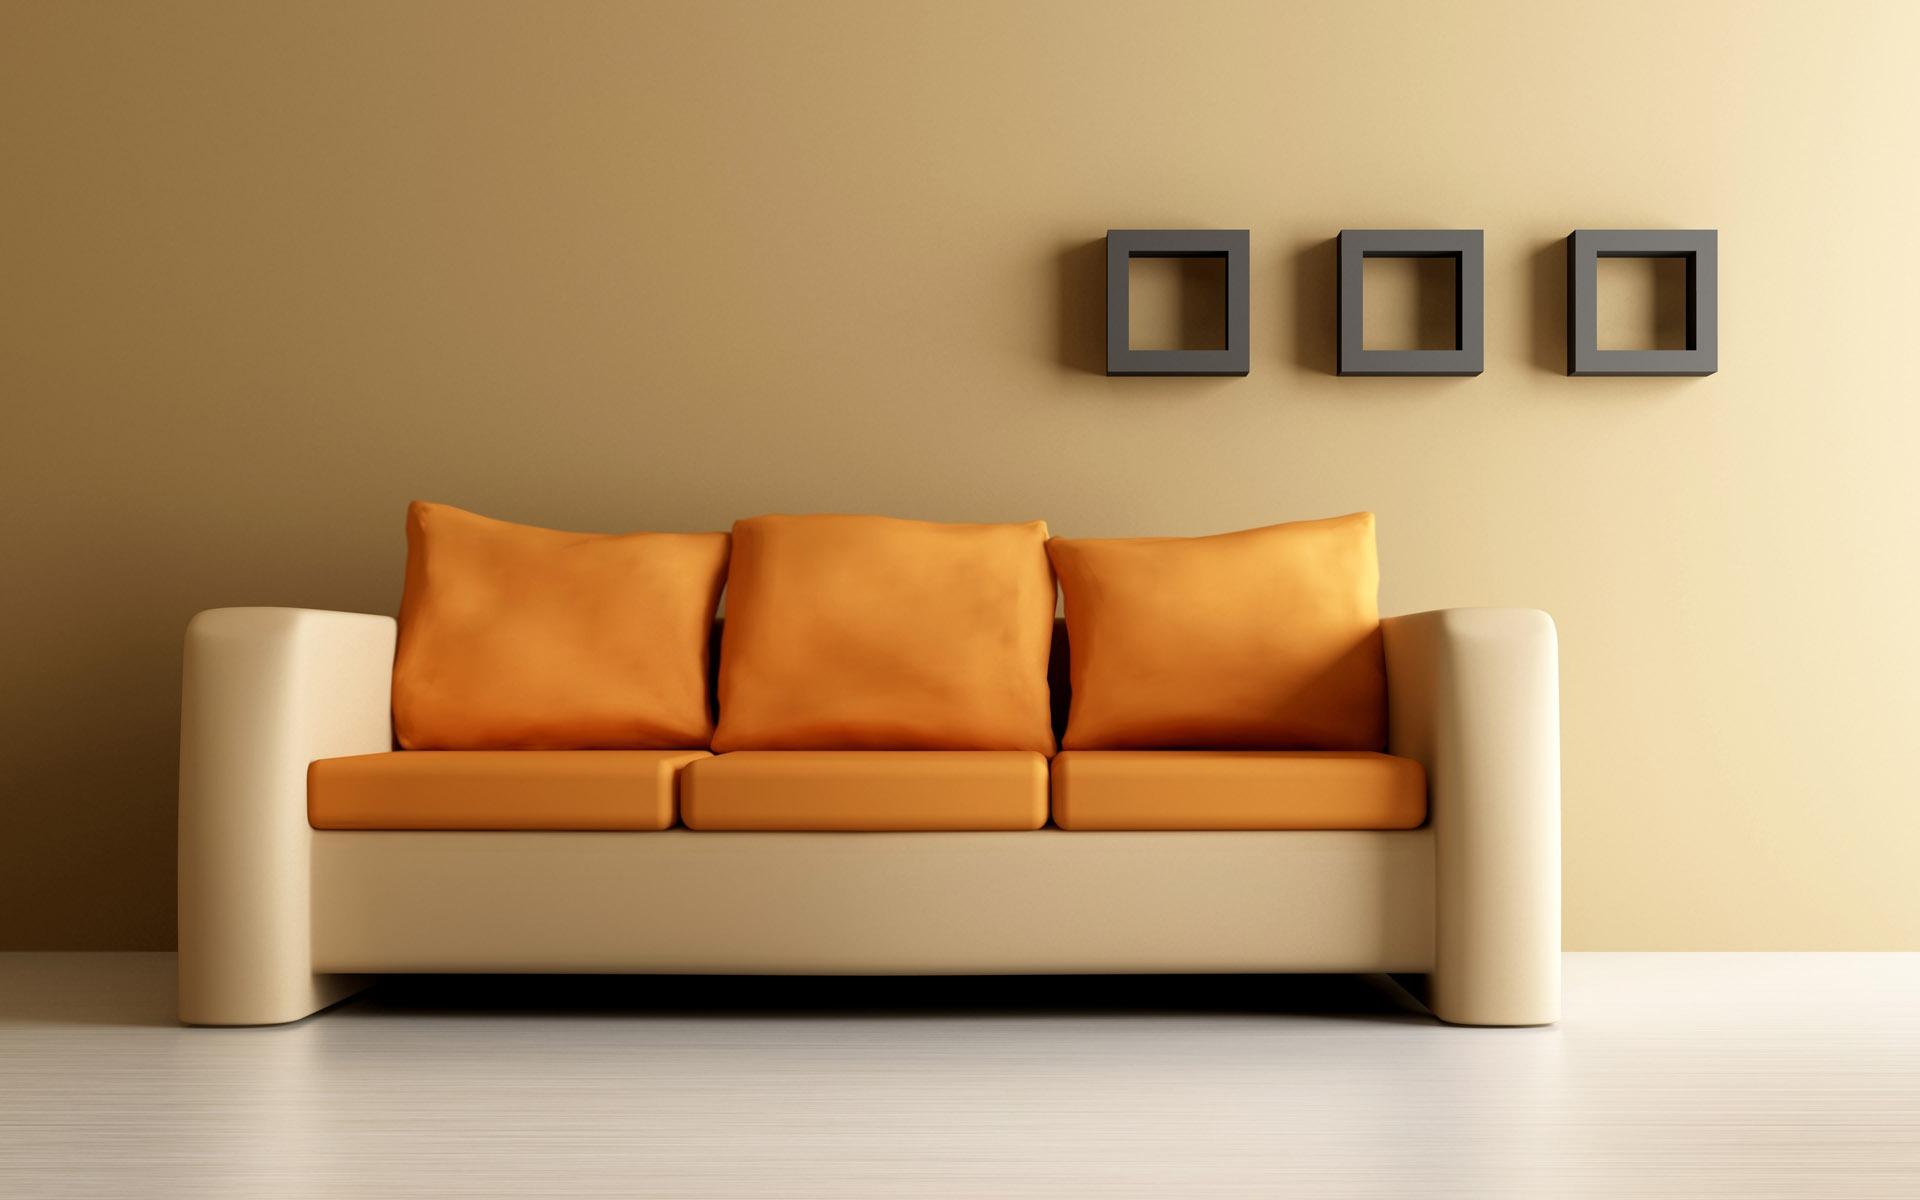 Orange Couch Wallpaper Interior Design Other. 3D Couch Wallpaper Interior Design Other Wallpapers in jpg format